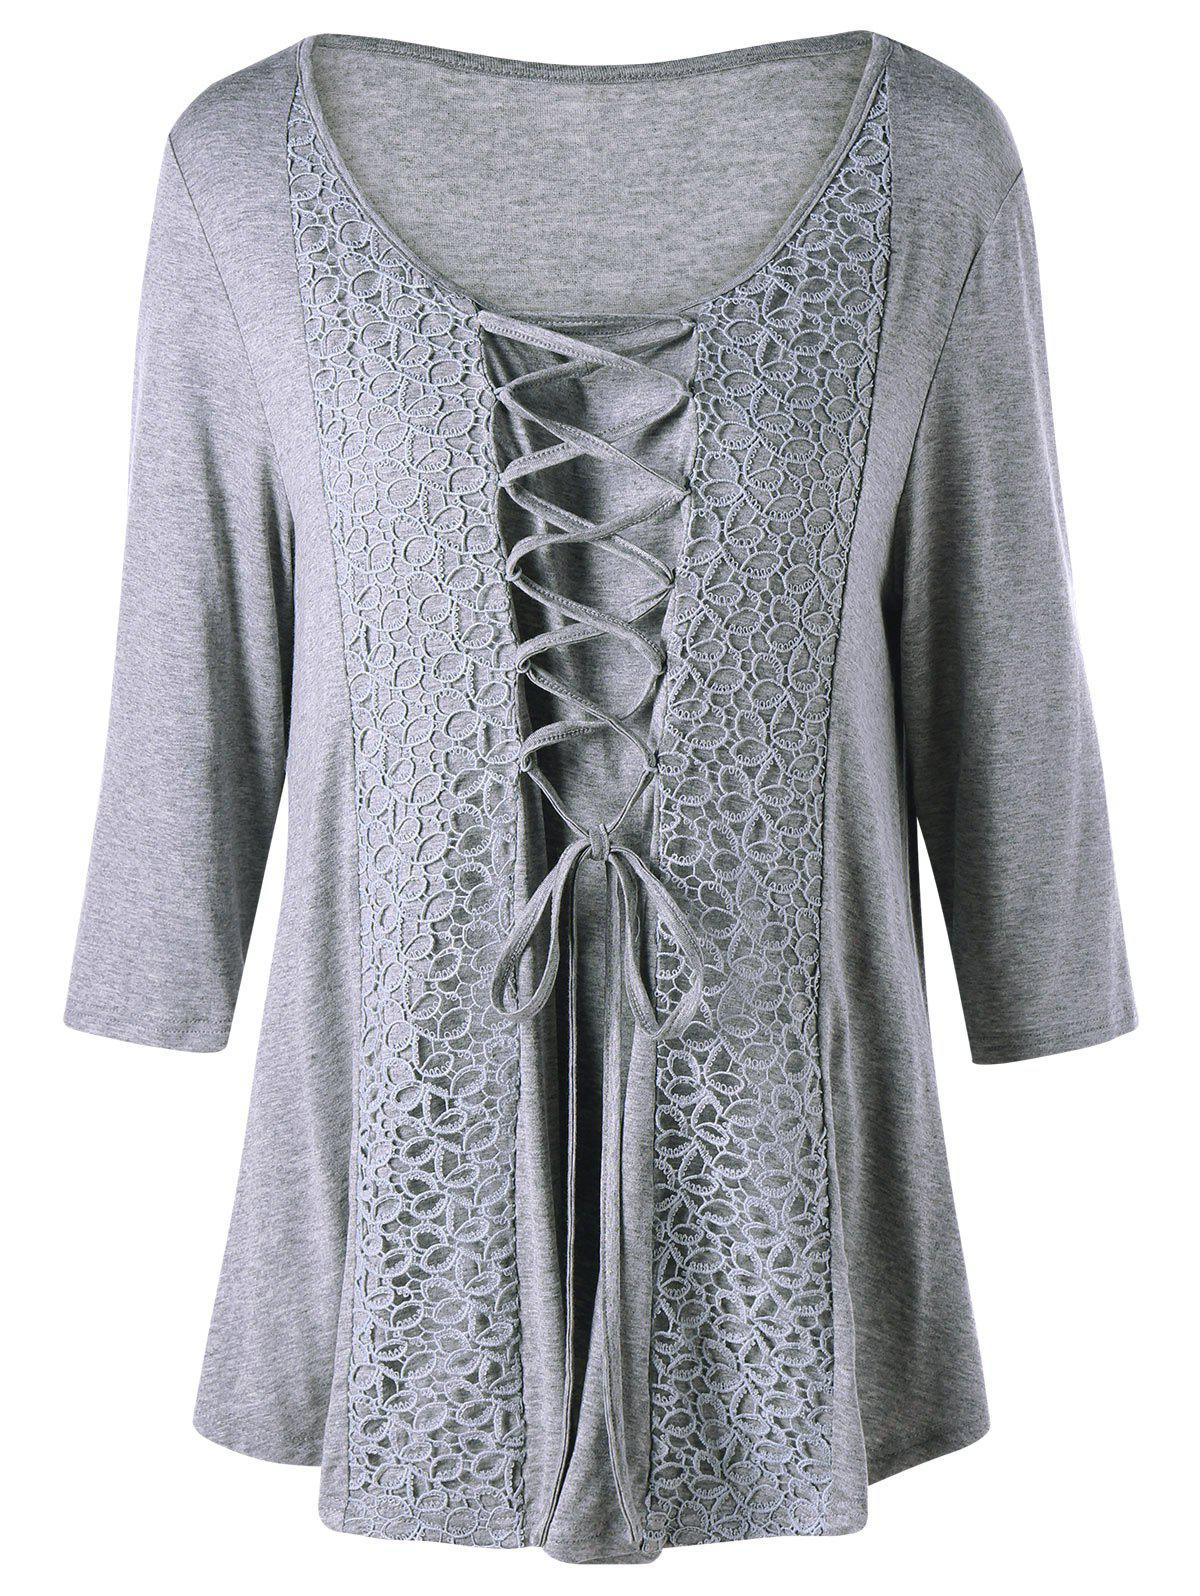 Plus Size Criss Cross Lace Panel TopWOMEN<br><br>Size: 2XL; Color: GRAY; Material: Cotton,Spandex; Shirt Length: Regular; Sleeve Length: Three Quarter; Collar: Scoop Neck; Style: Casual; Season: Fall,Spring; Embellishment: Criss-Cross; Pattern Type: Others; Weight: 0.3000kg; Package Contents: 1 x T-shirt;